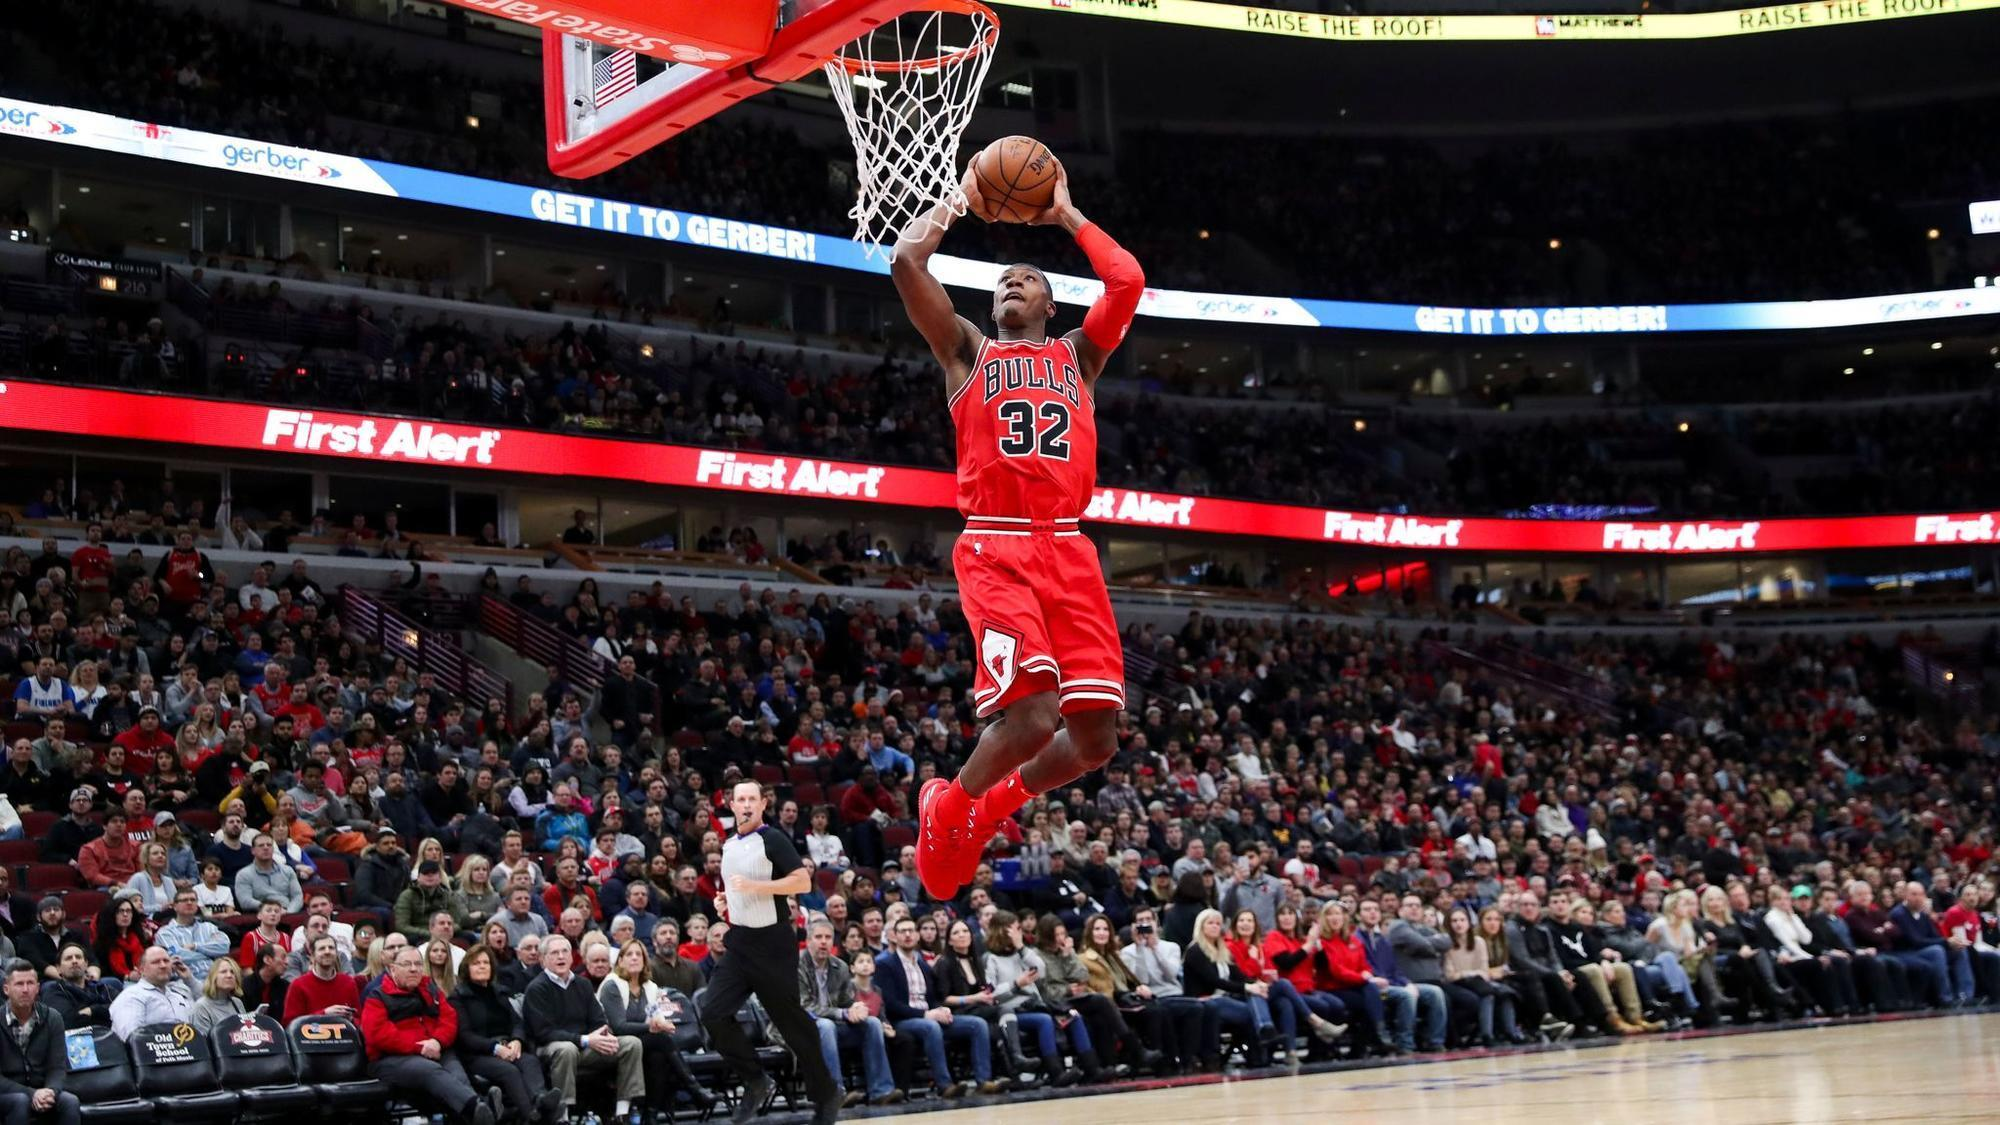 Bulls shouldn't apologize for winning games - Chicago Tribune